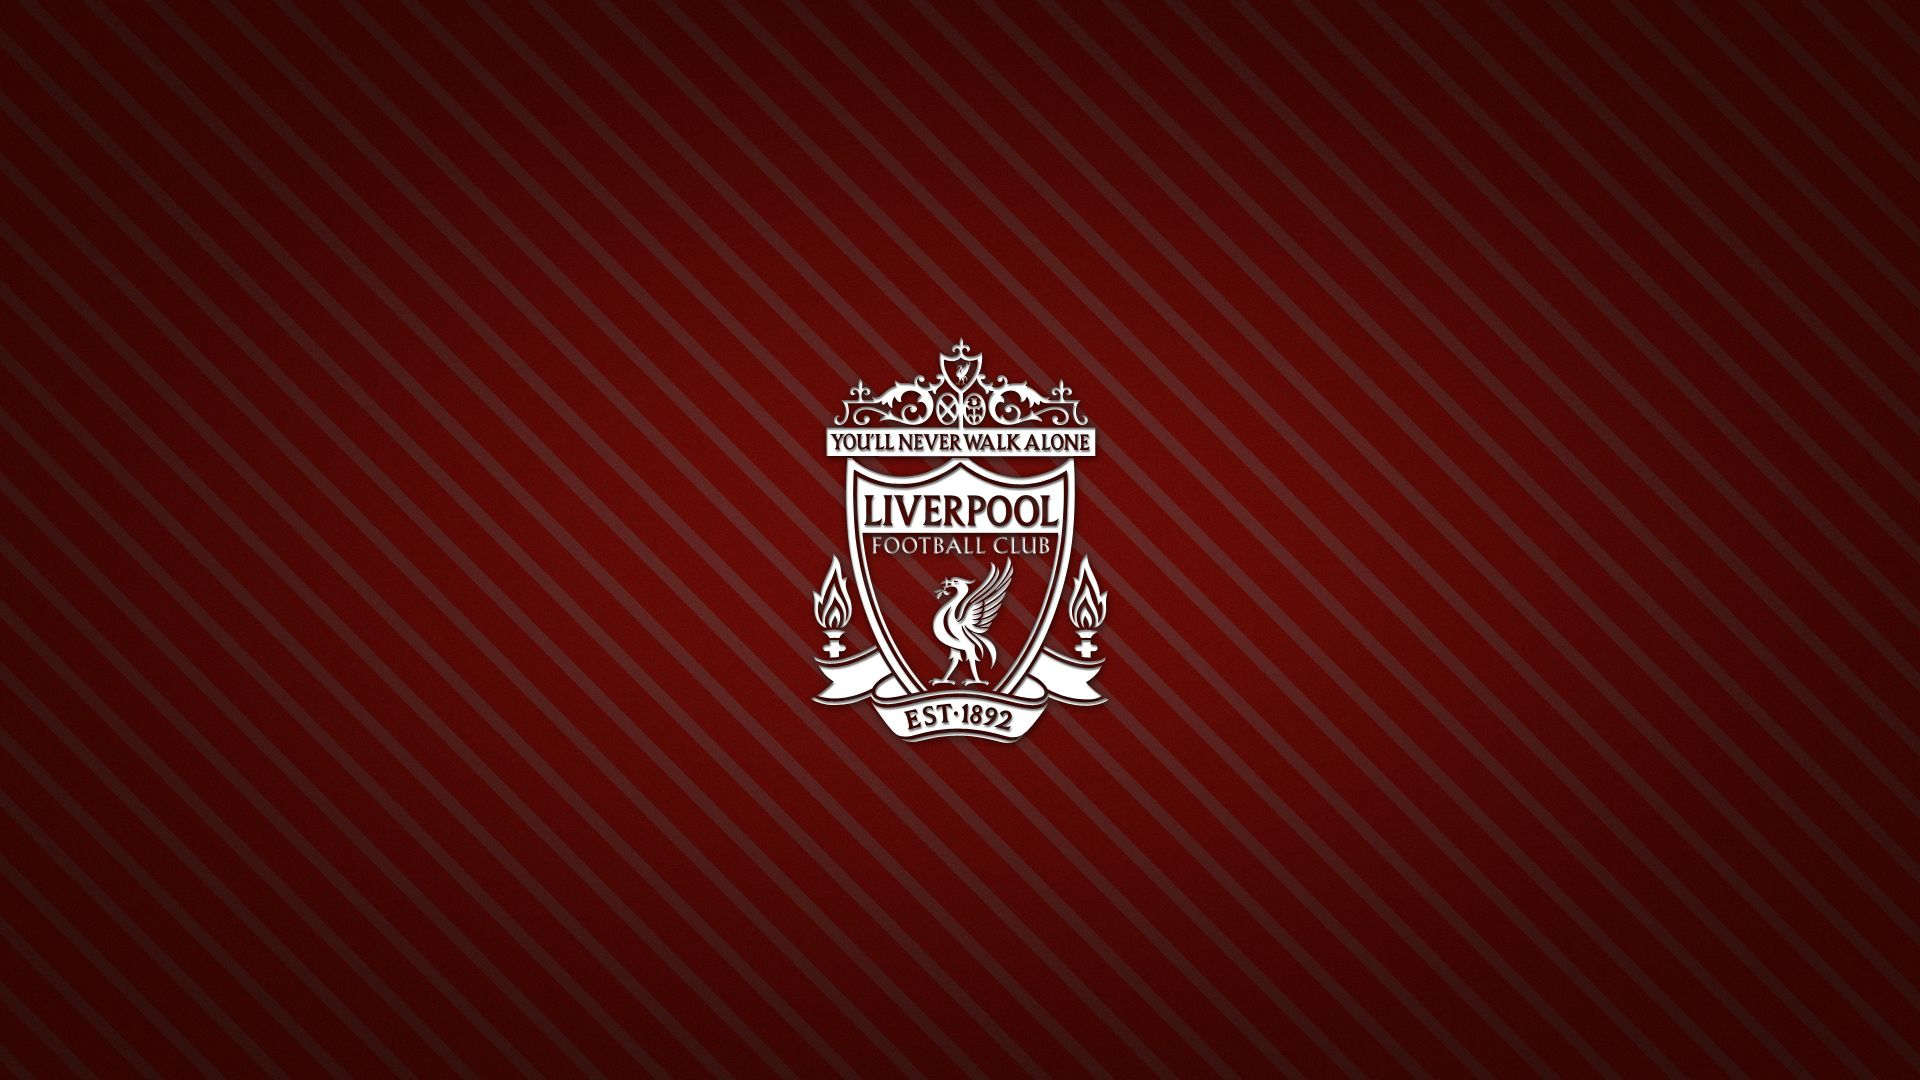 Liverpoolfc Wallpapers